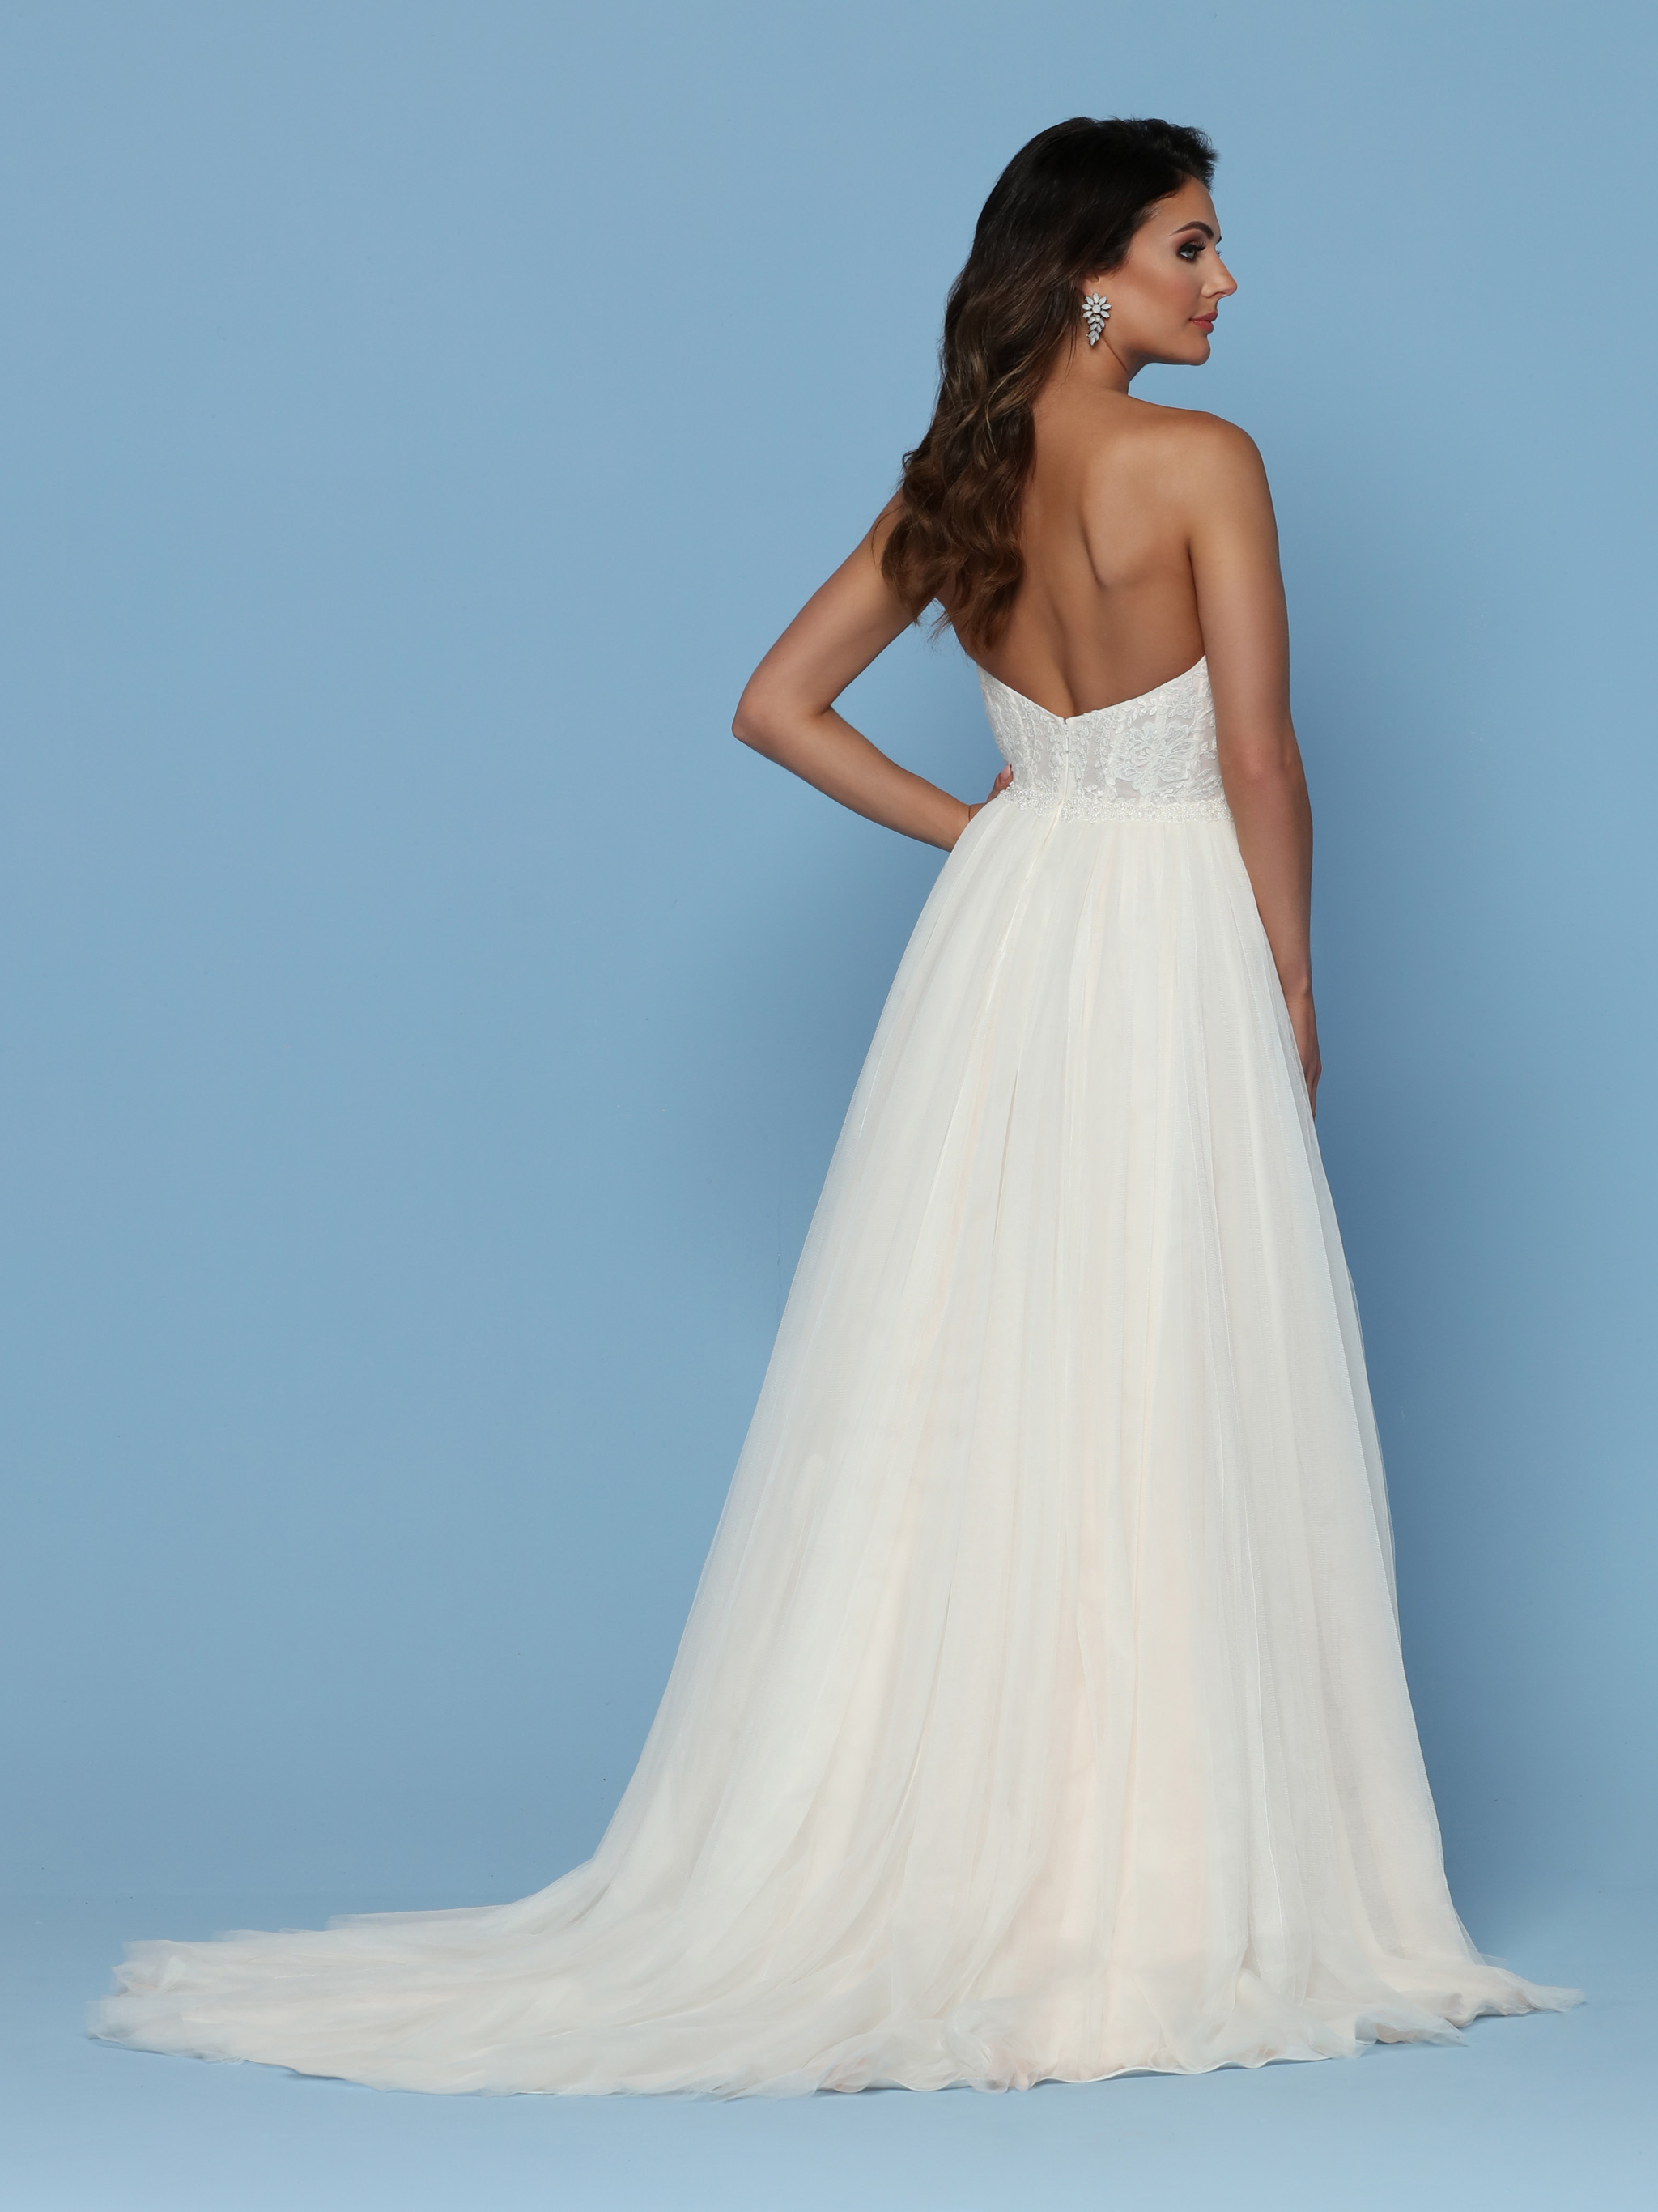 Davinci Bridal Our Flagship Collection Was Created For The Savvy Bride Who Wants An Elegant High Quality Wedding Dress At A More Affordable Price